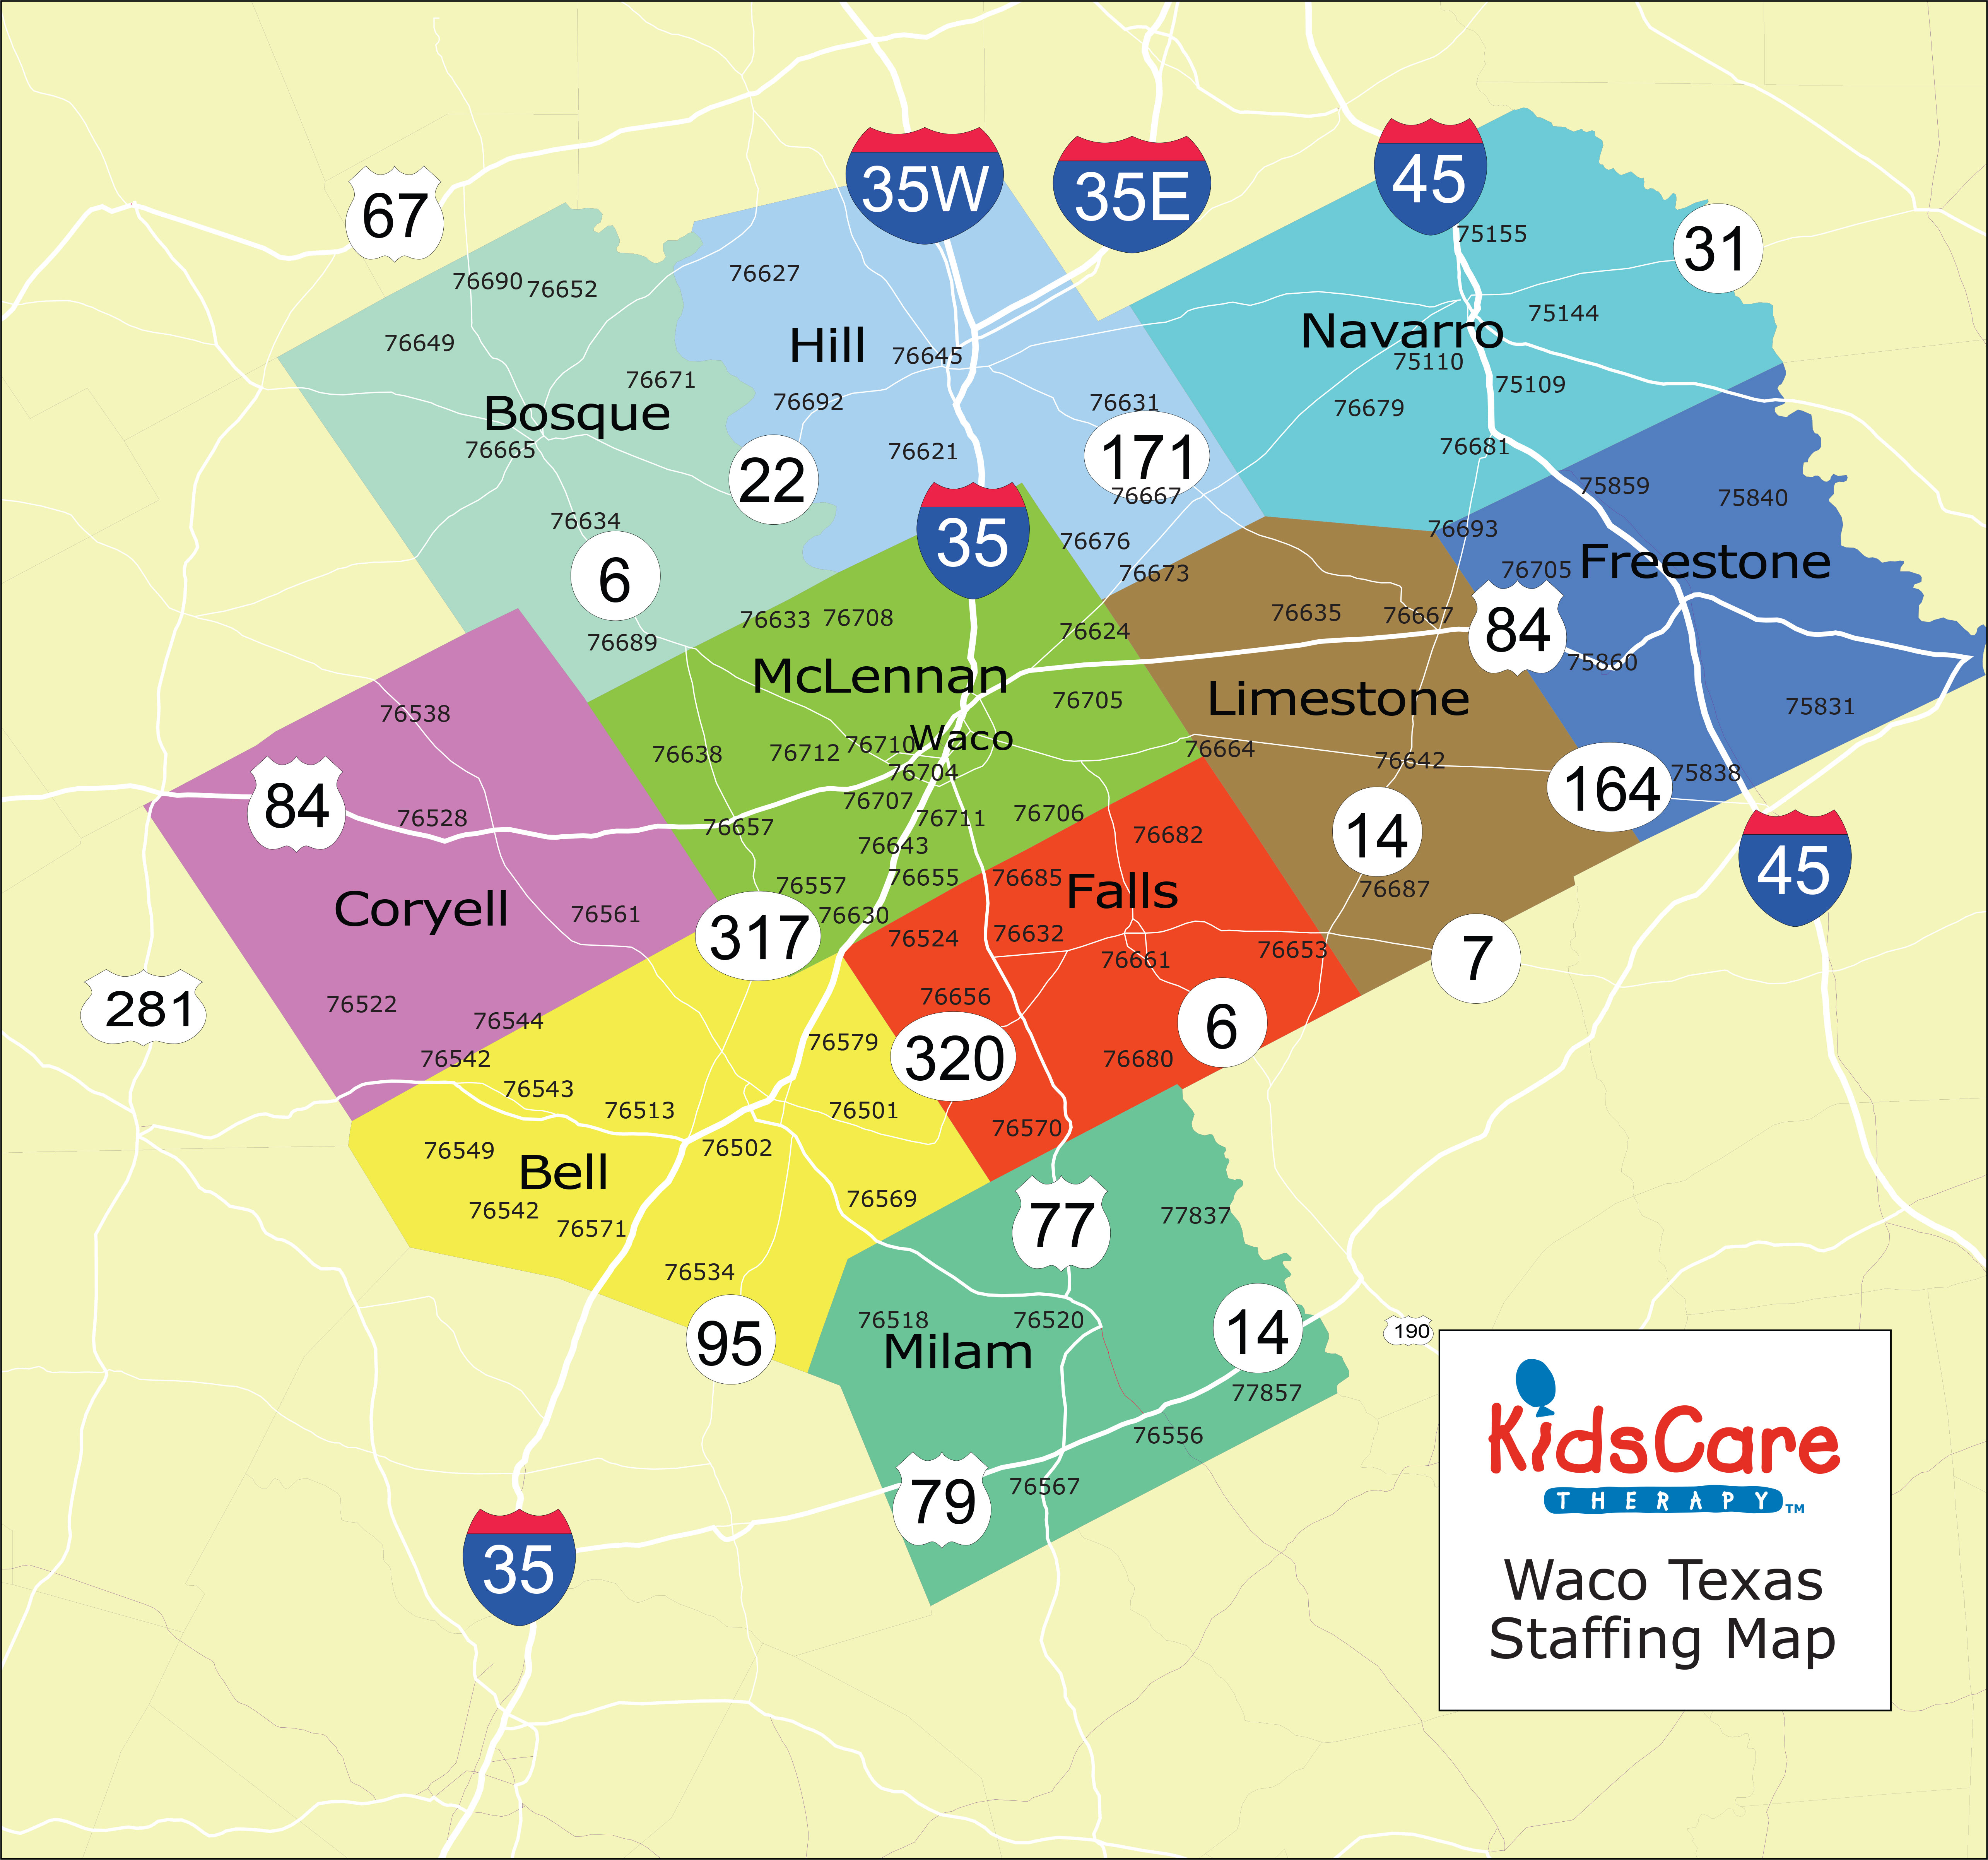 KidsCare Home Health Waco Maps